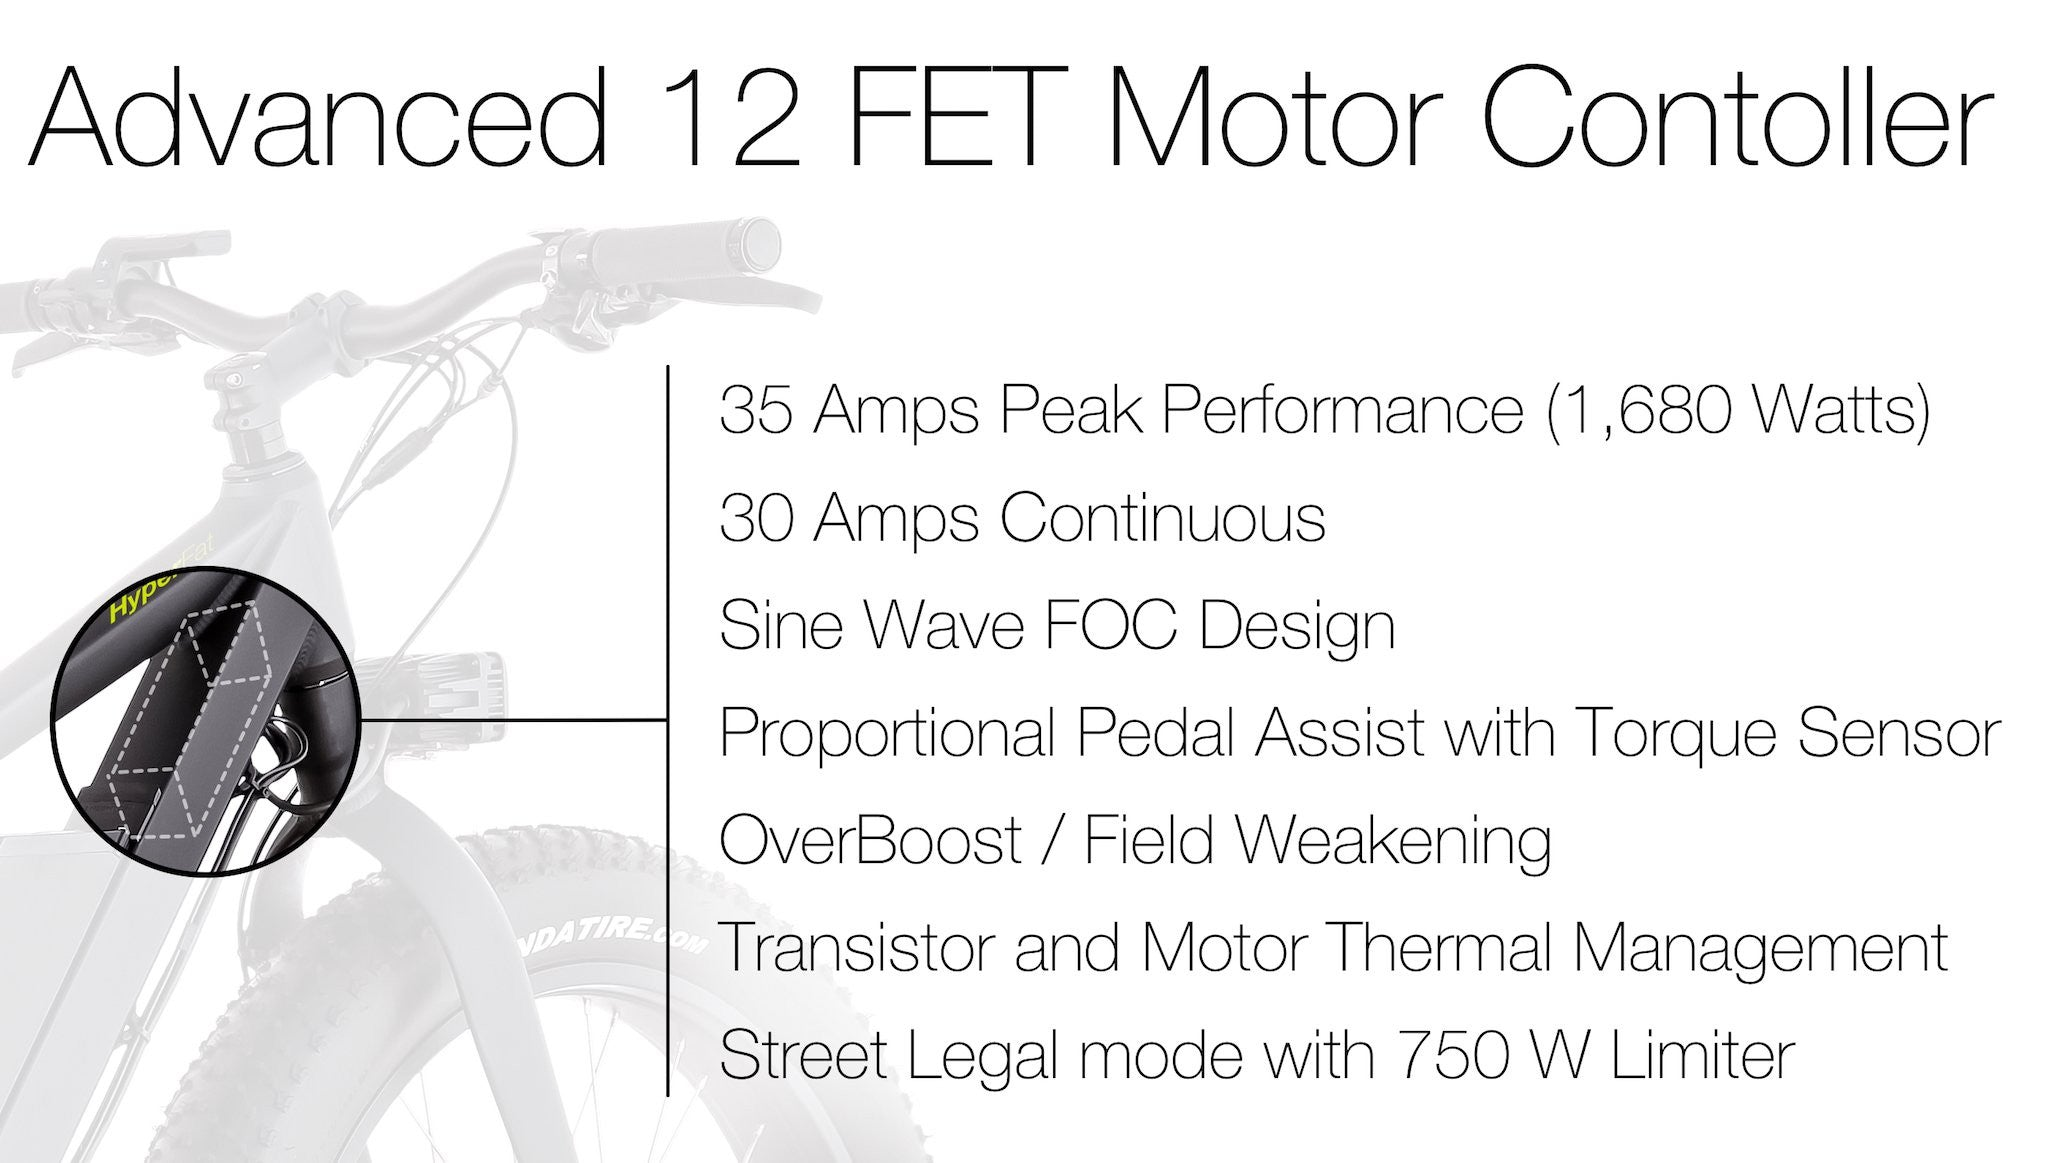 Advanced 12 FET Motor Controller